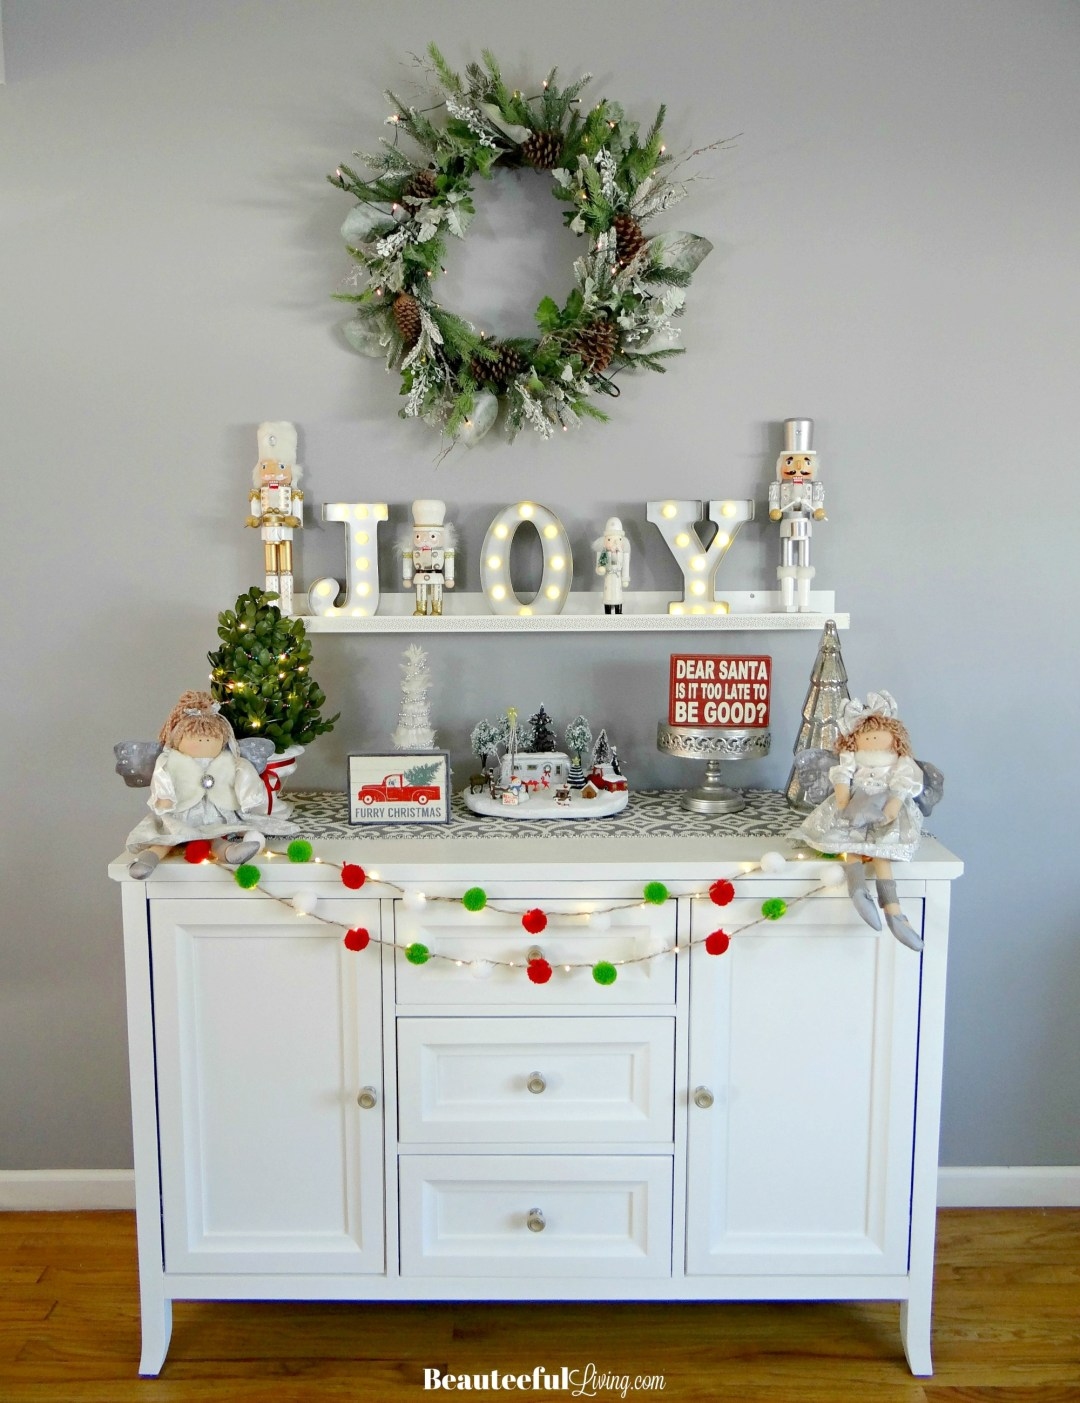 Glam Holiday Console Table Decor - Beauteeful Living